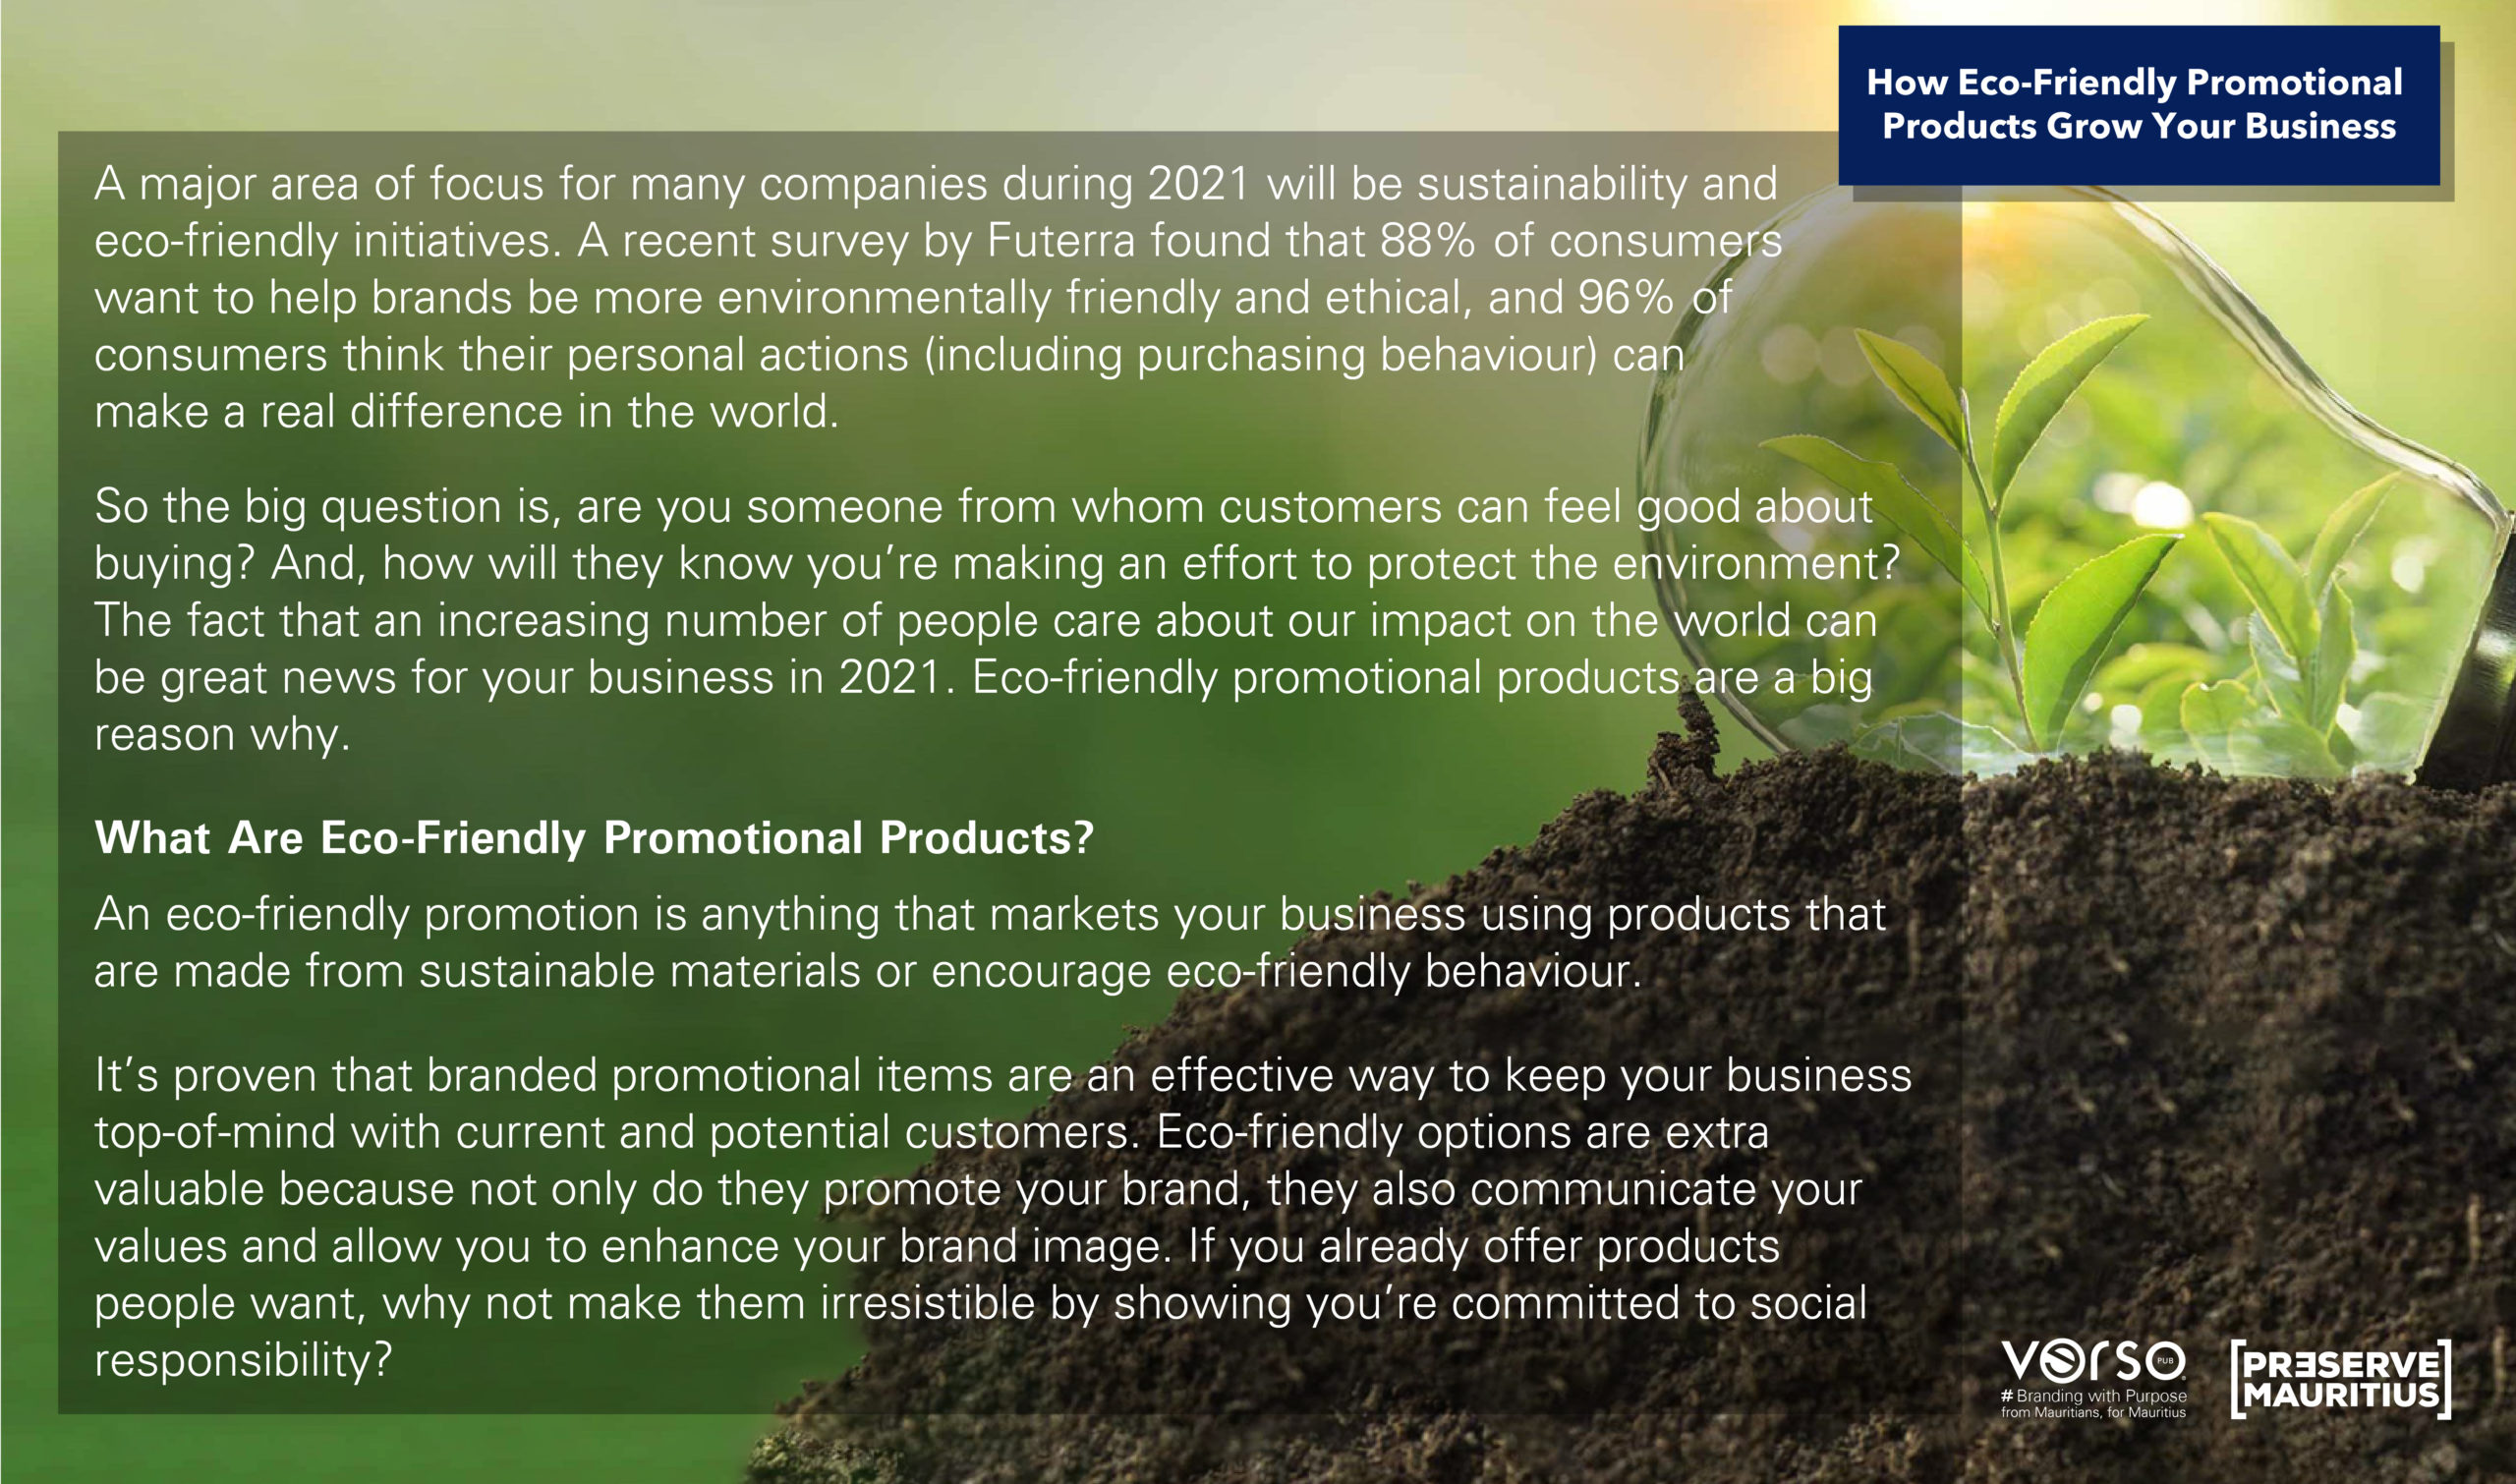 How Eco-Friendly Promotional Products Grow Your Business